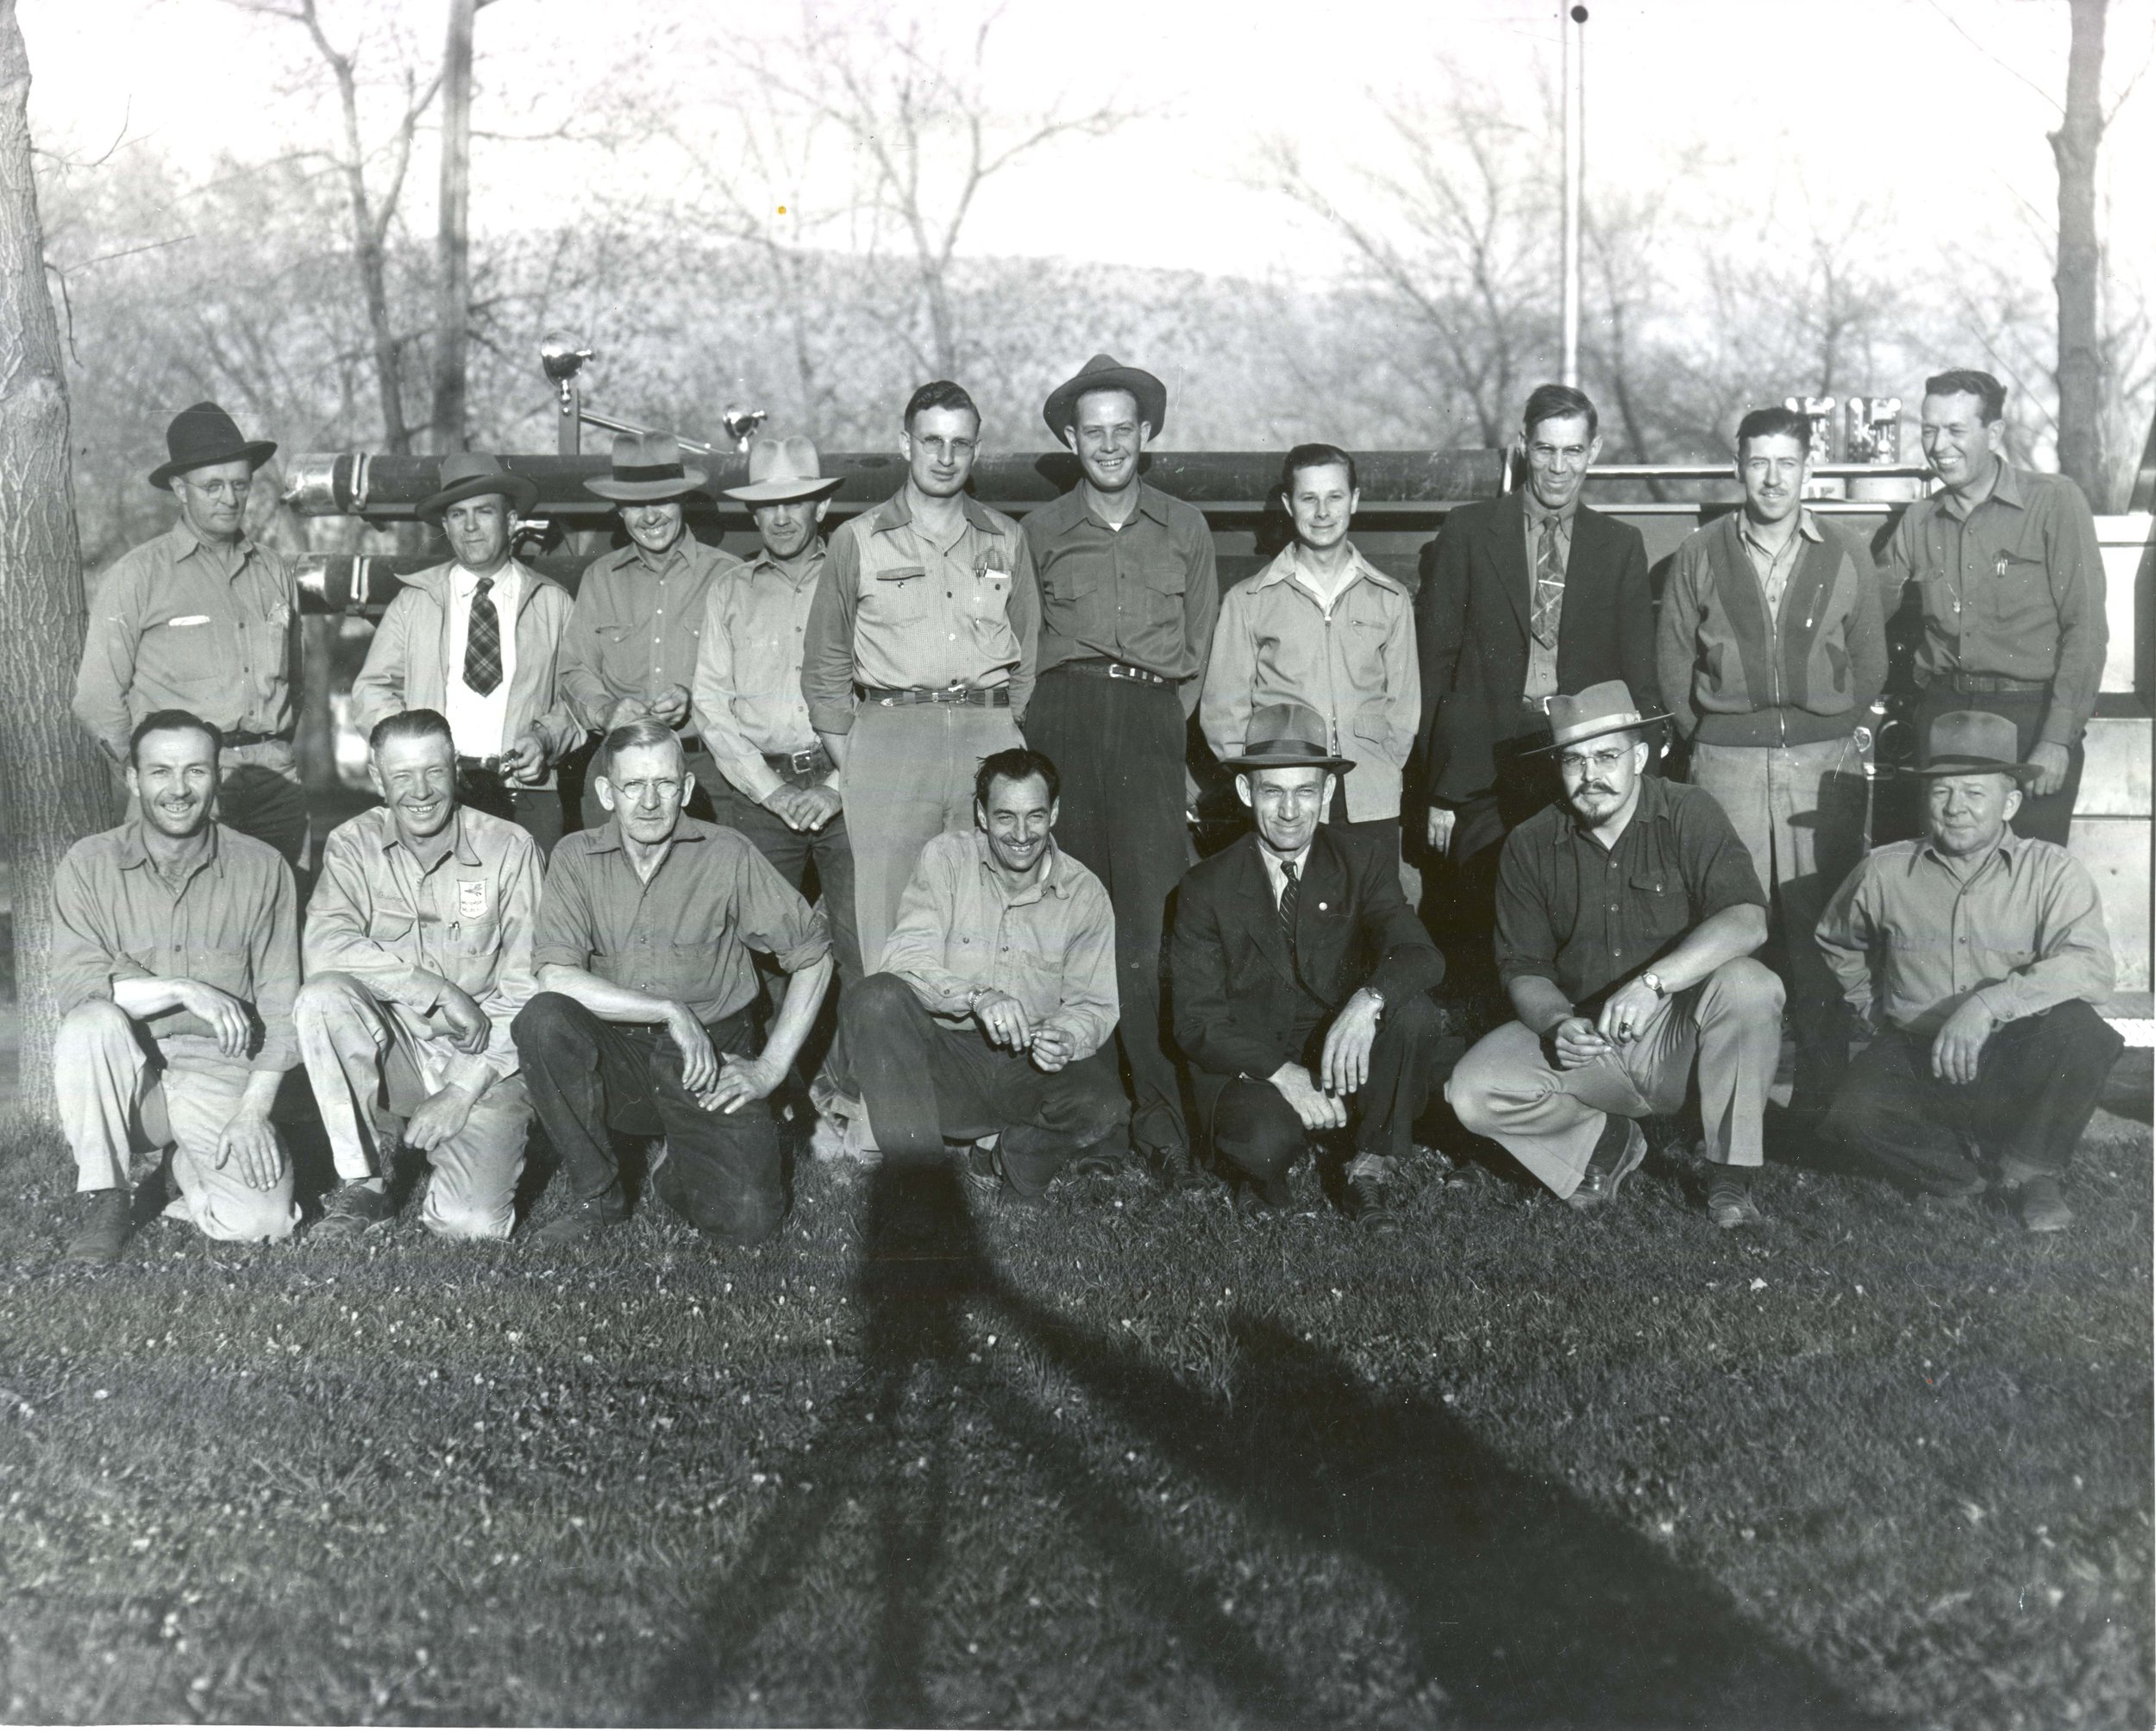 The Cedar City Fire Department circa 1948